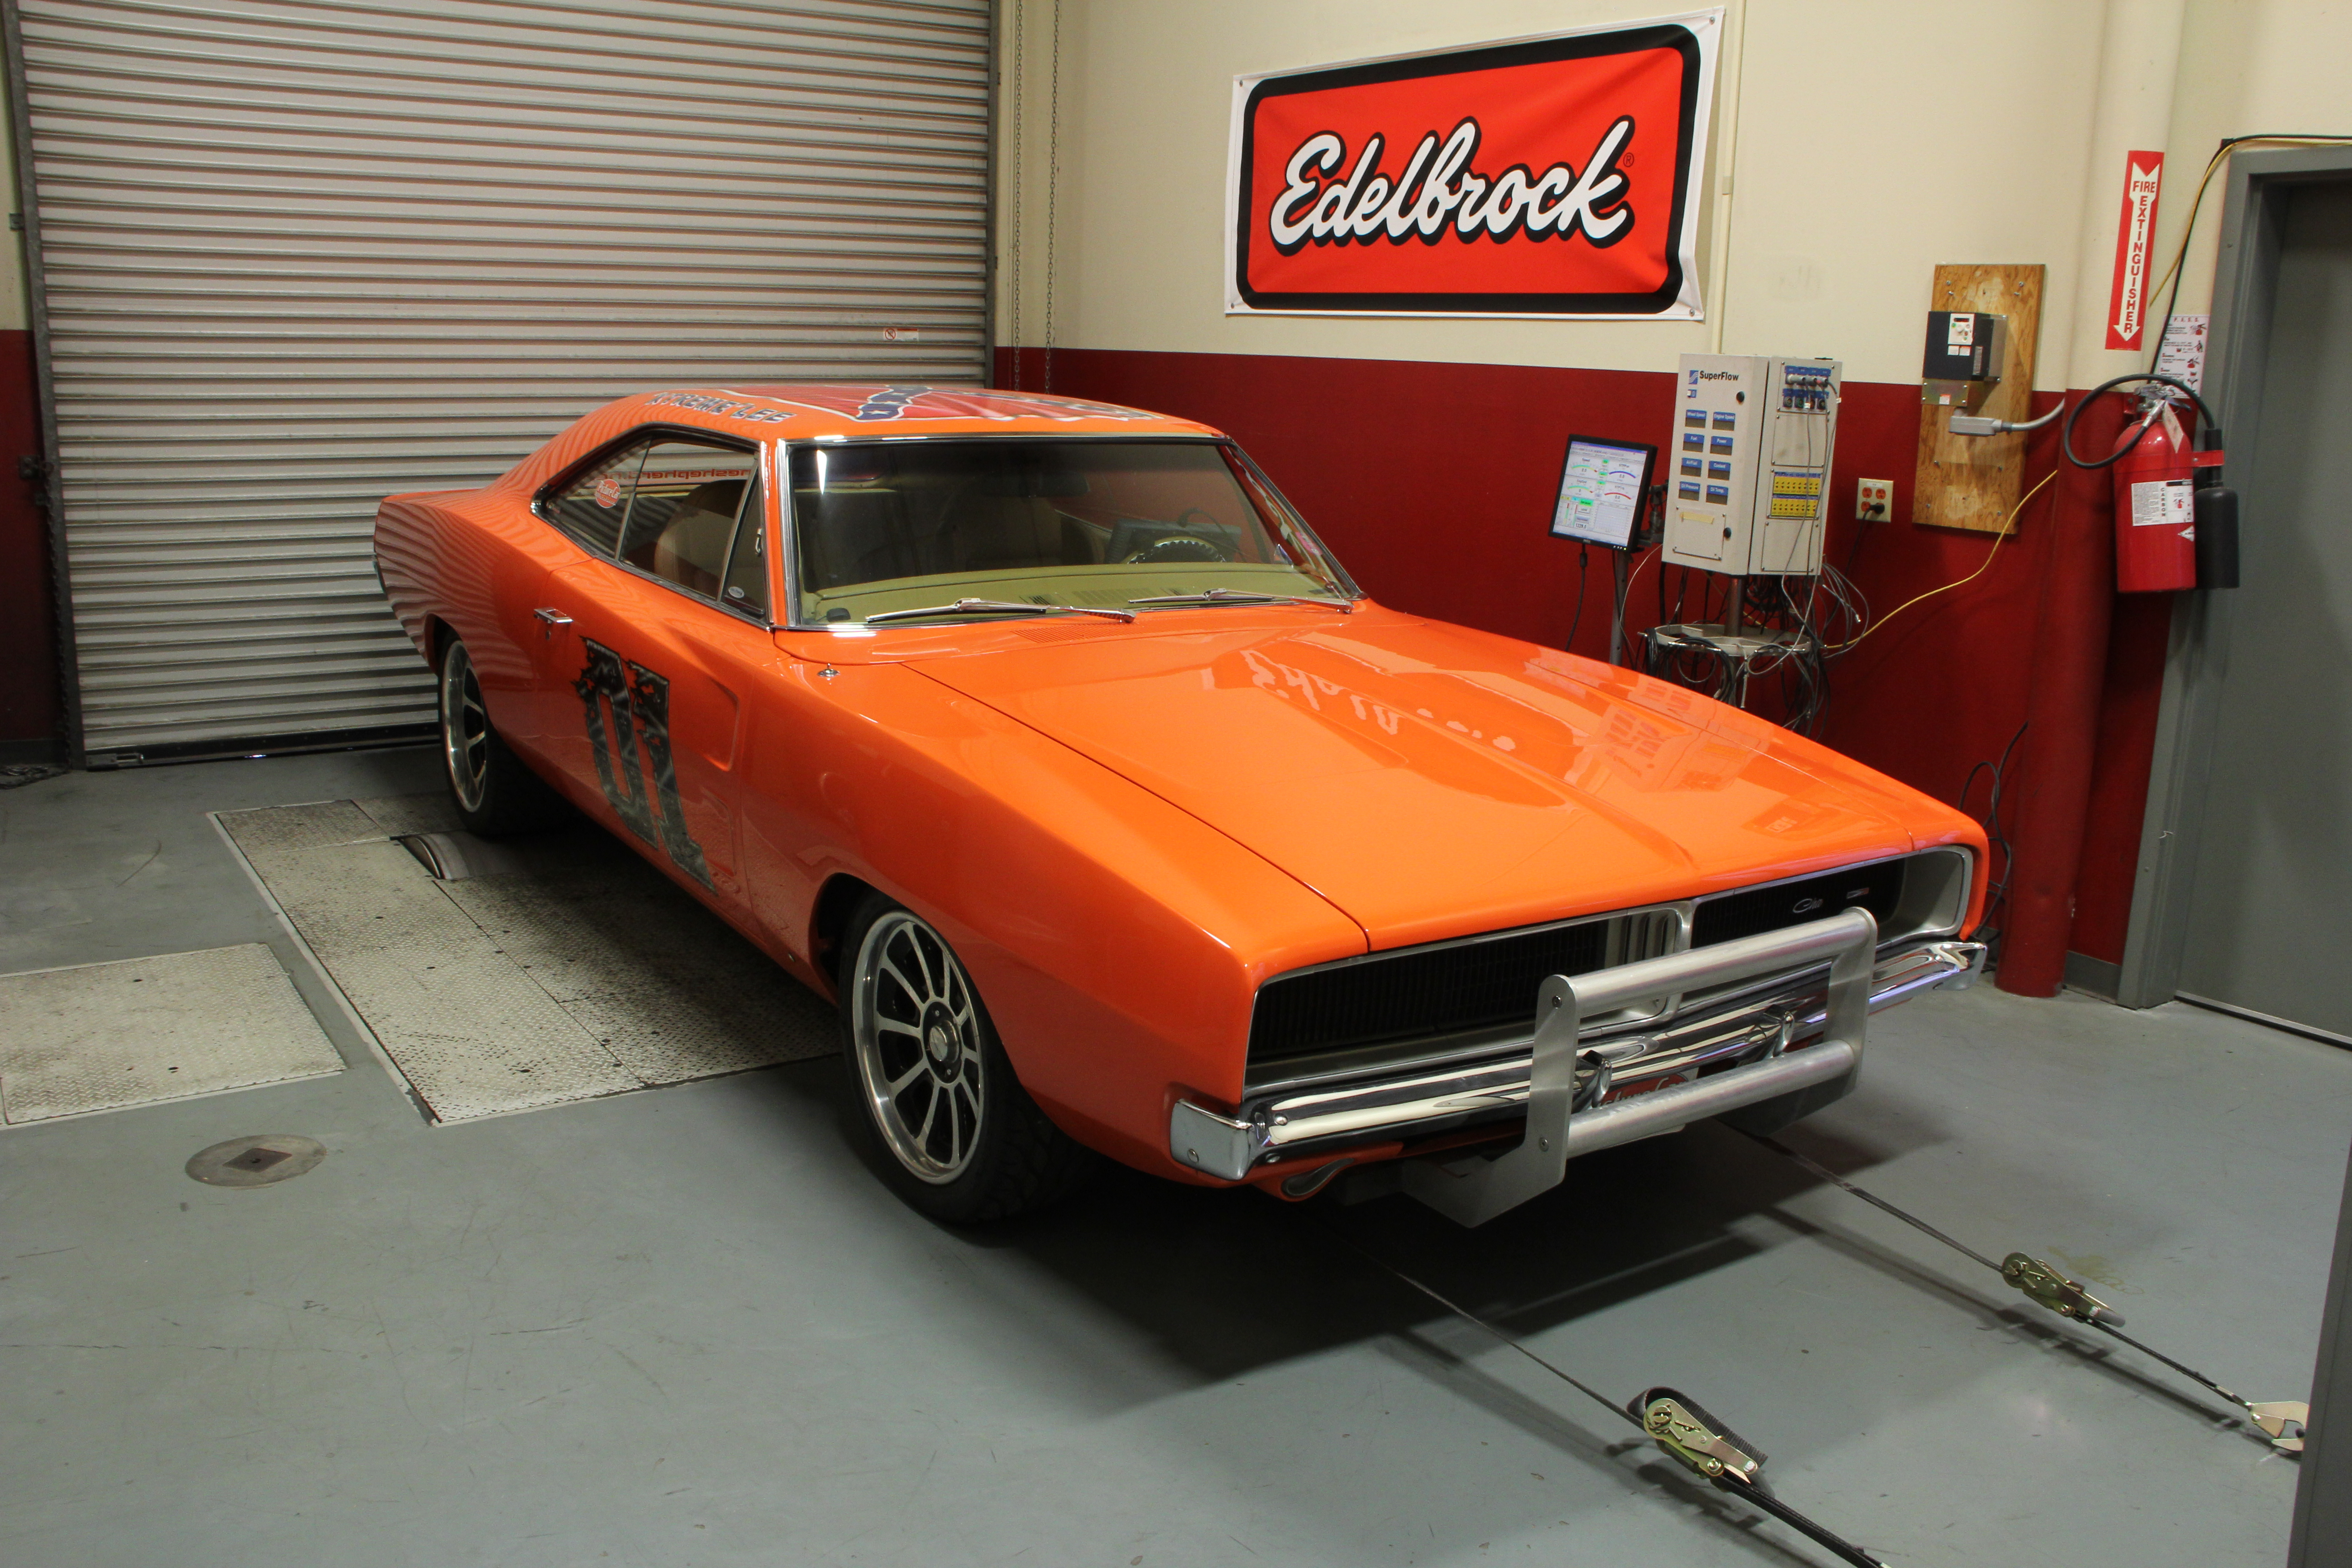 This is Kenny's '69 Charger. Orange, big-block, push bar and General Lee inspired graphics. What's not to like?